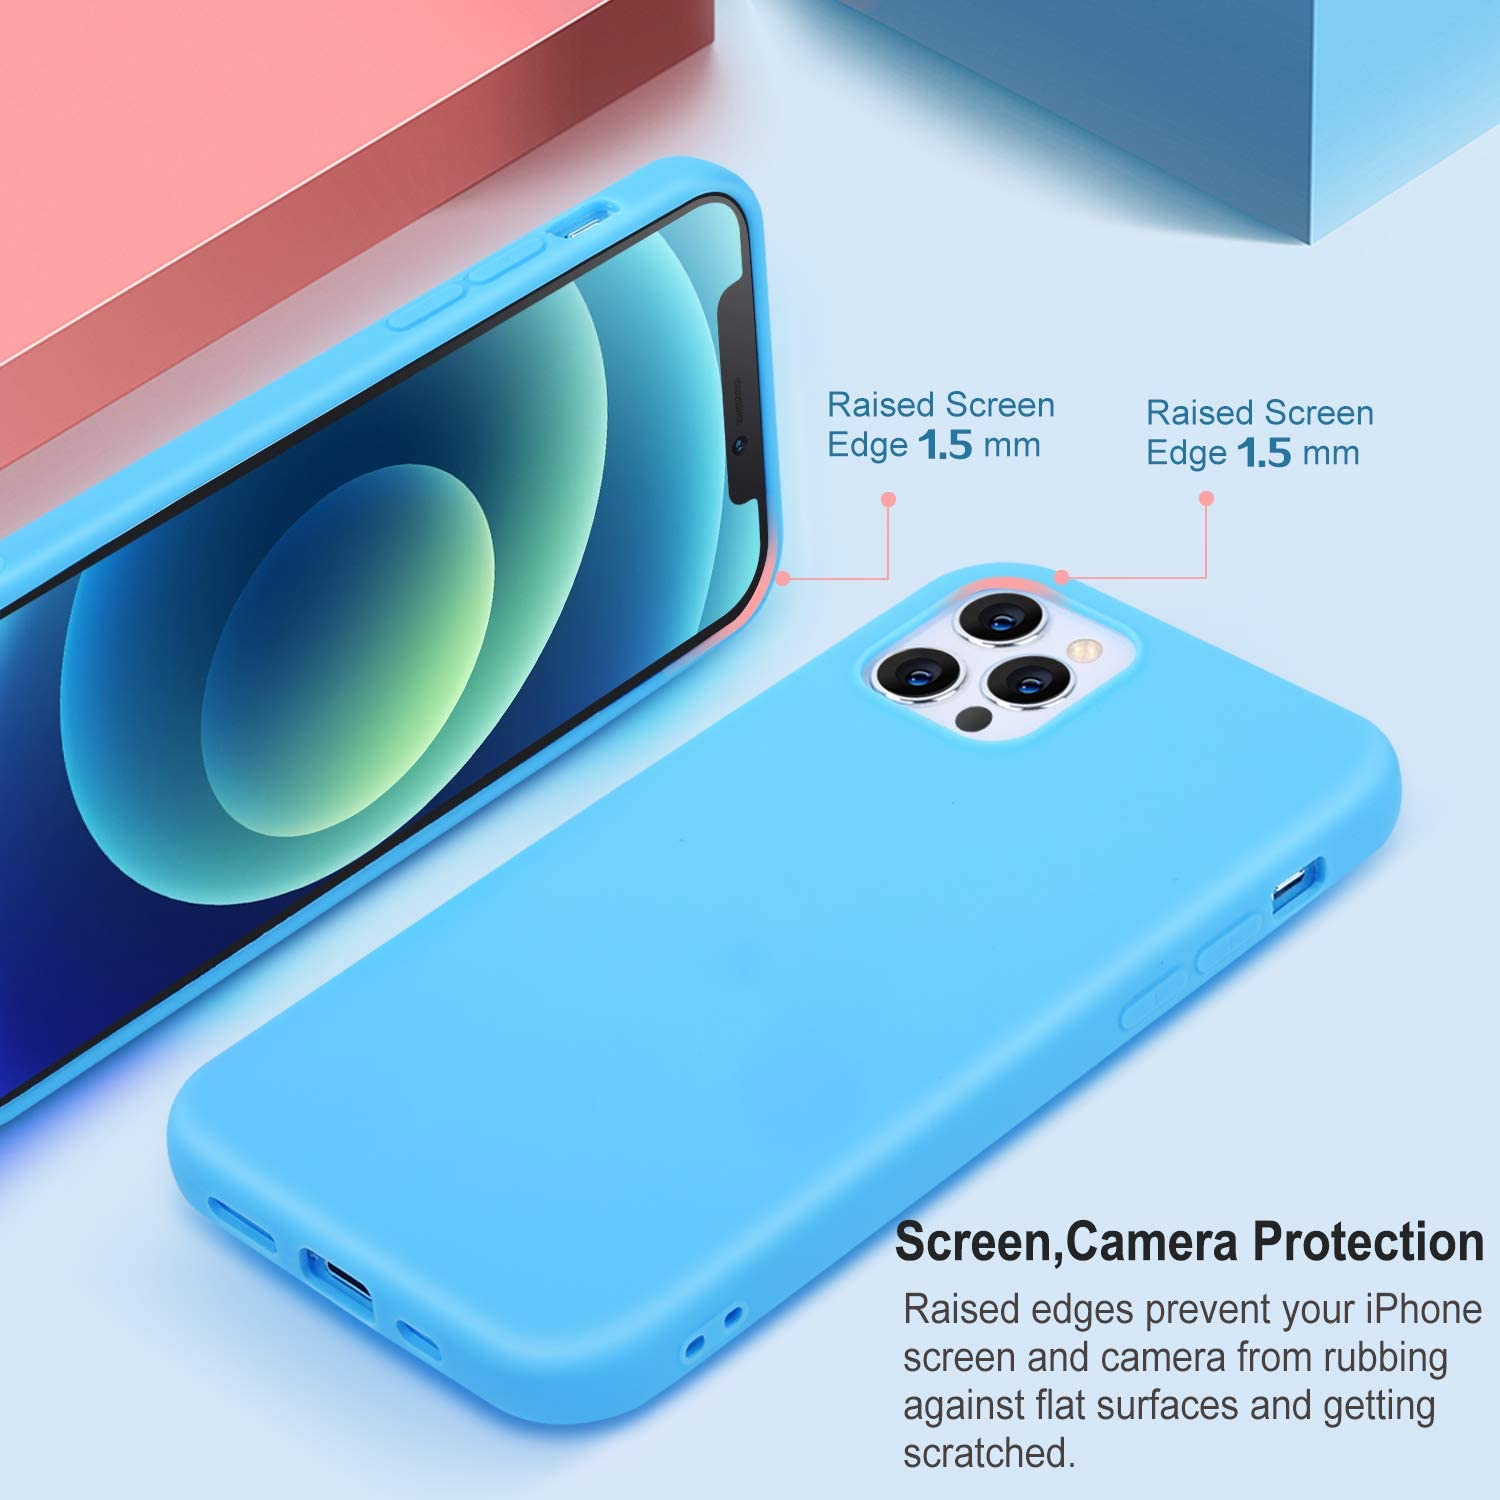 Pofesun 5 Pack Silicone Case Compatible with iPhone 12/iPhone 12 Pro, Slim Gel Rubber Full Body Protection Shockproof Case Cover for iPhone 12/iPhone 12 Pro 6.1 inch-White,Blue,Pink,Purple,Mint Green